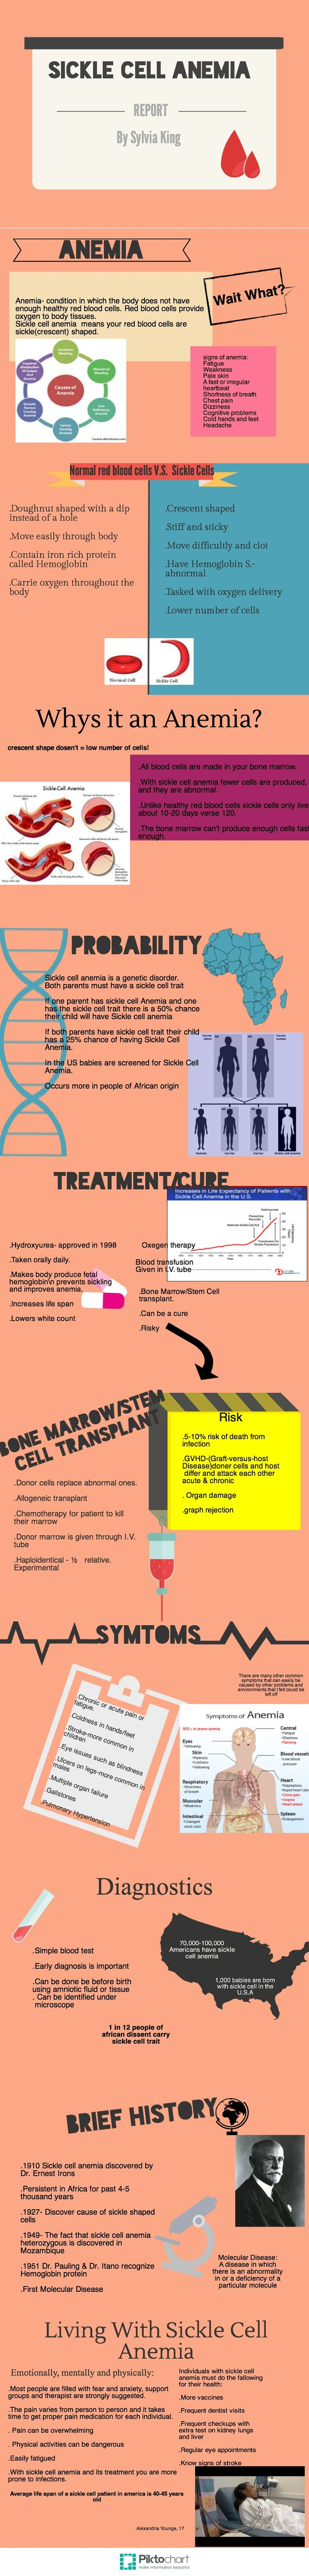 Sickle  Cell Anemia   @Piktochart Infographic